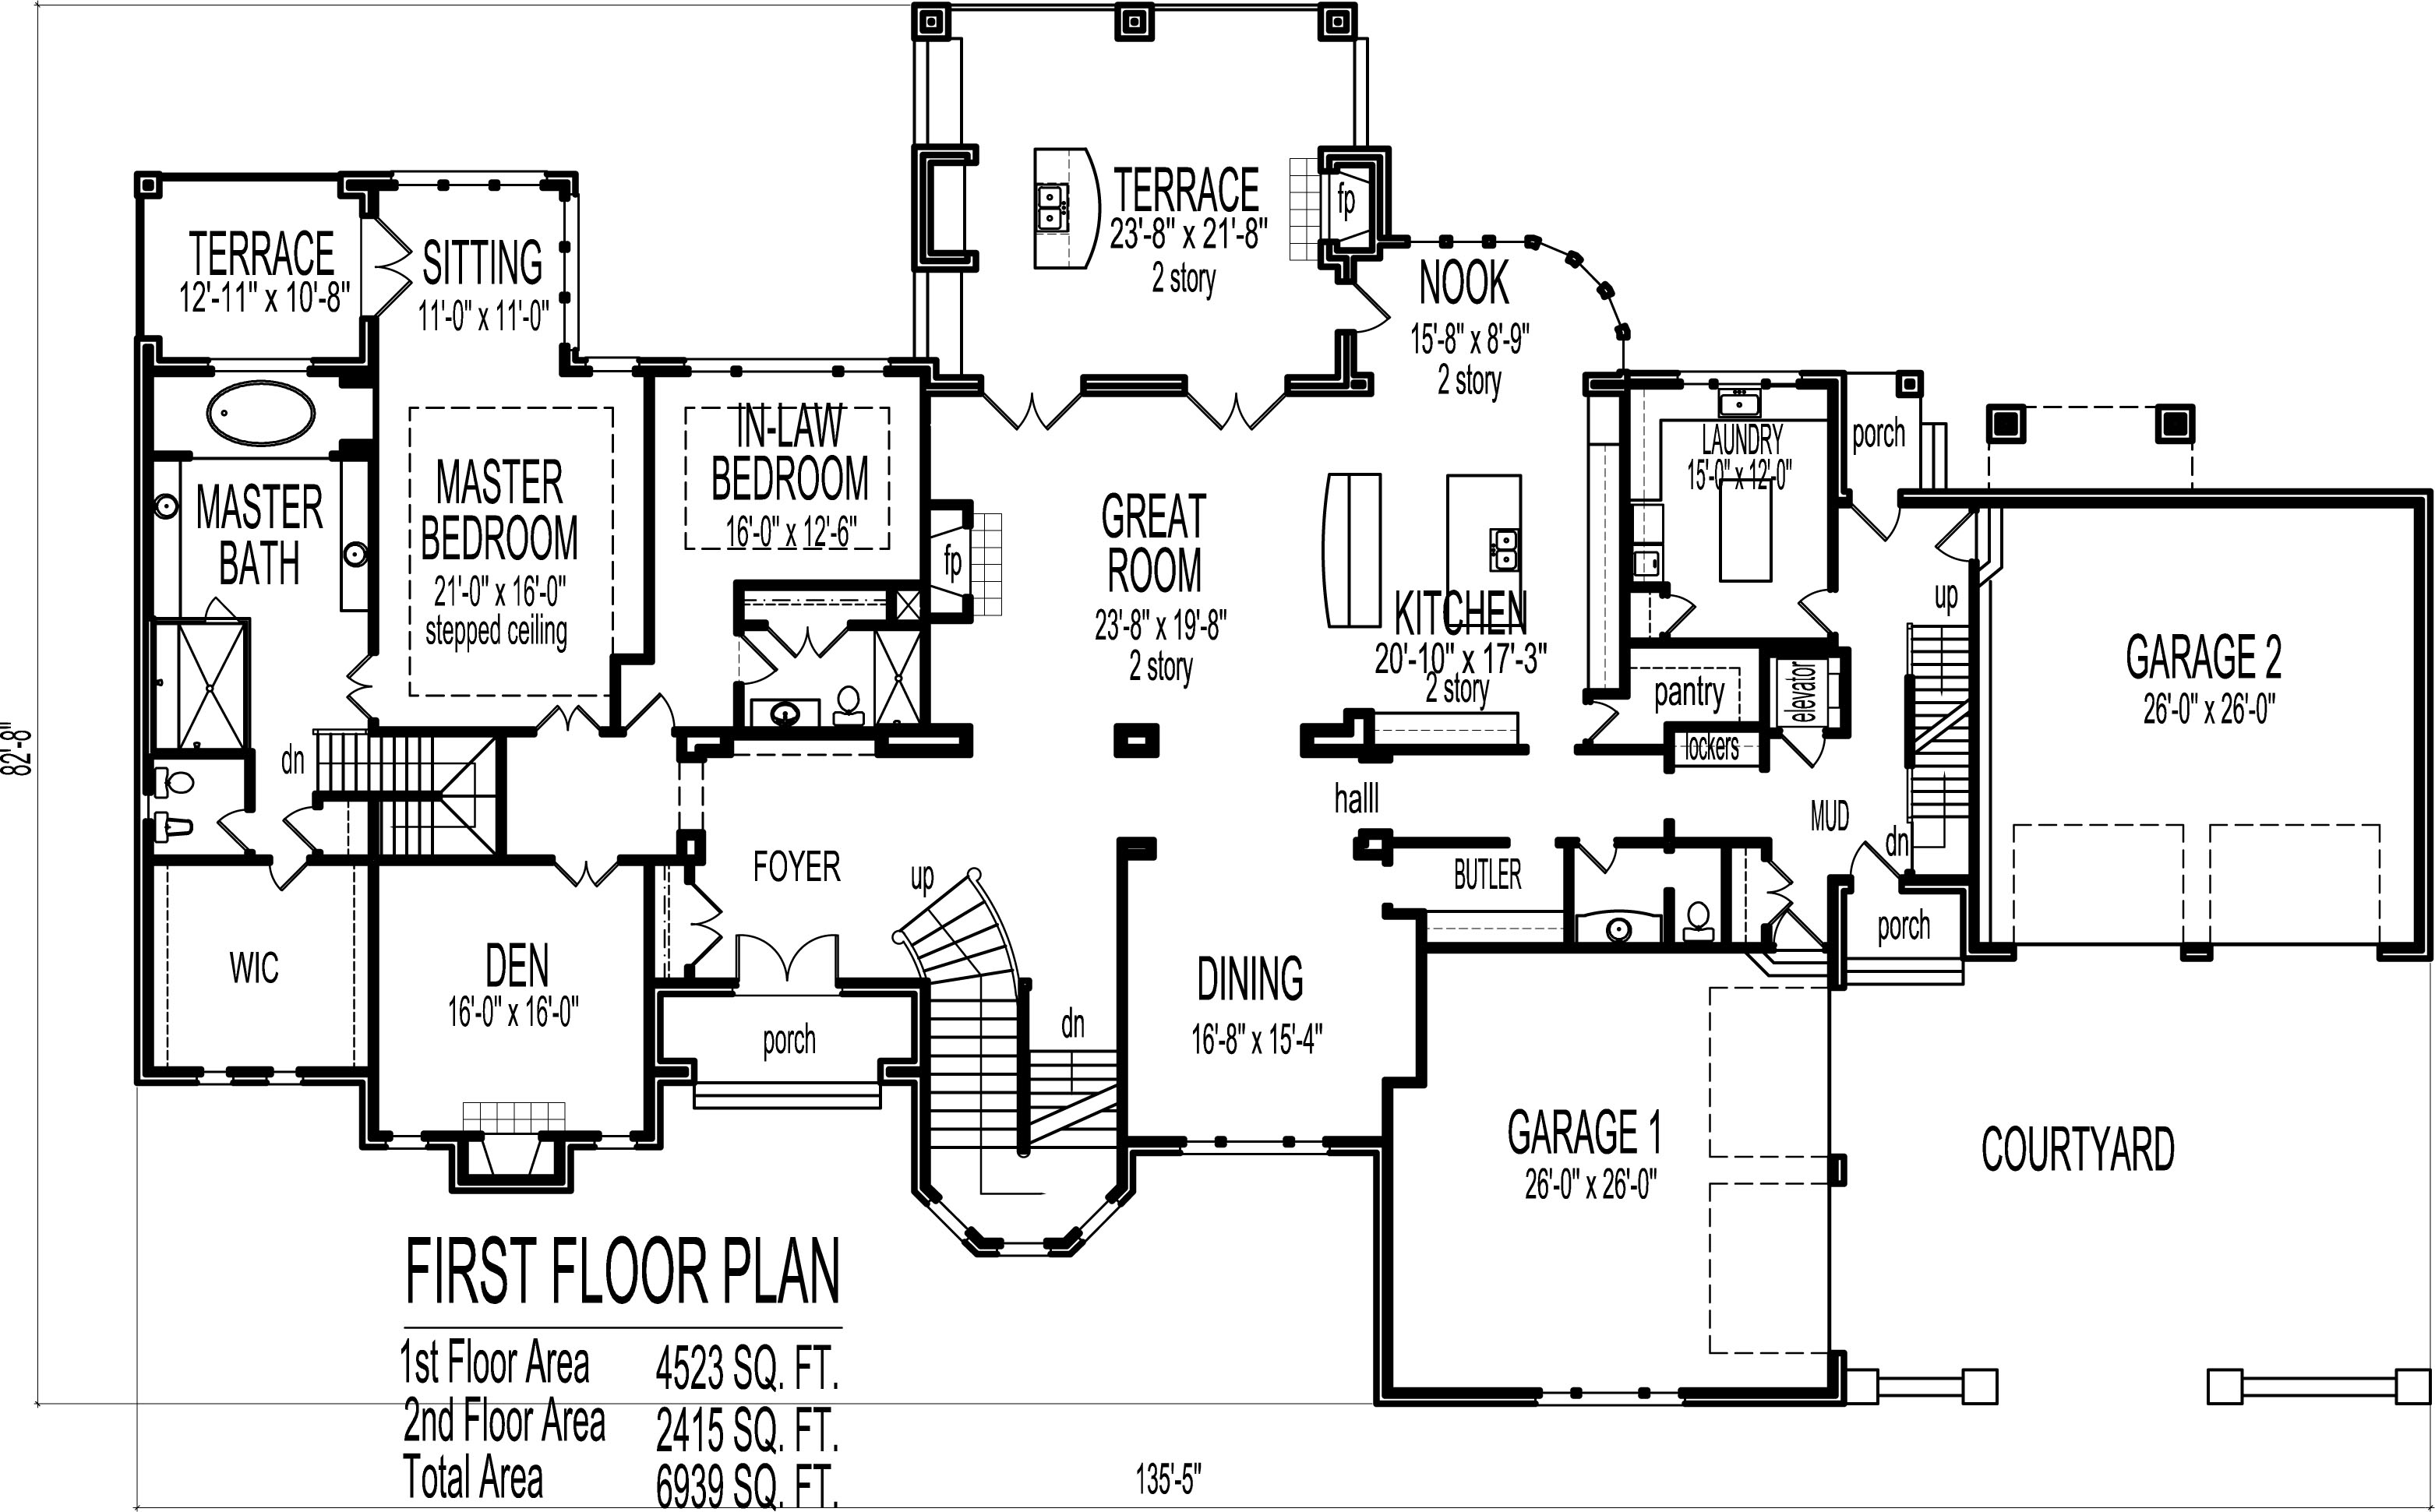 Mansion house floor plans blueprints 6 bedroom 2 story for 6 bedroom house designs